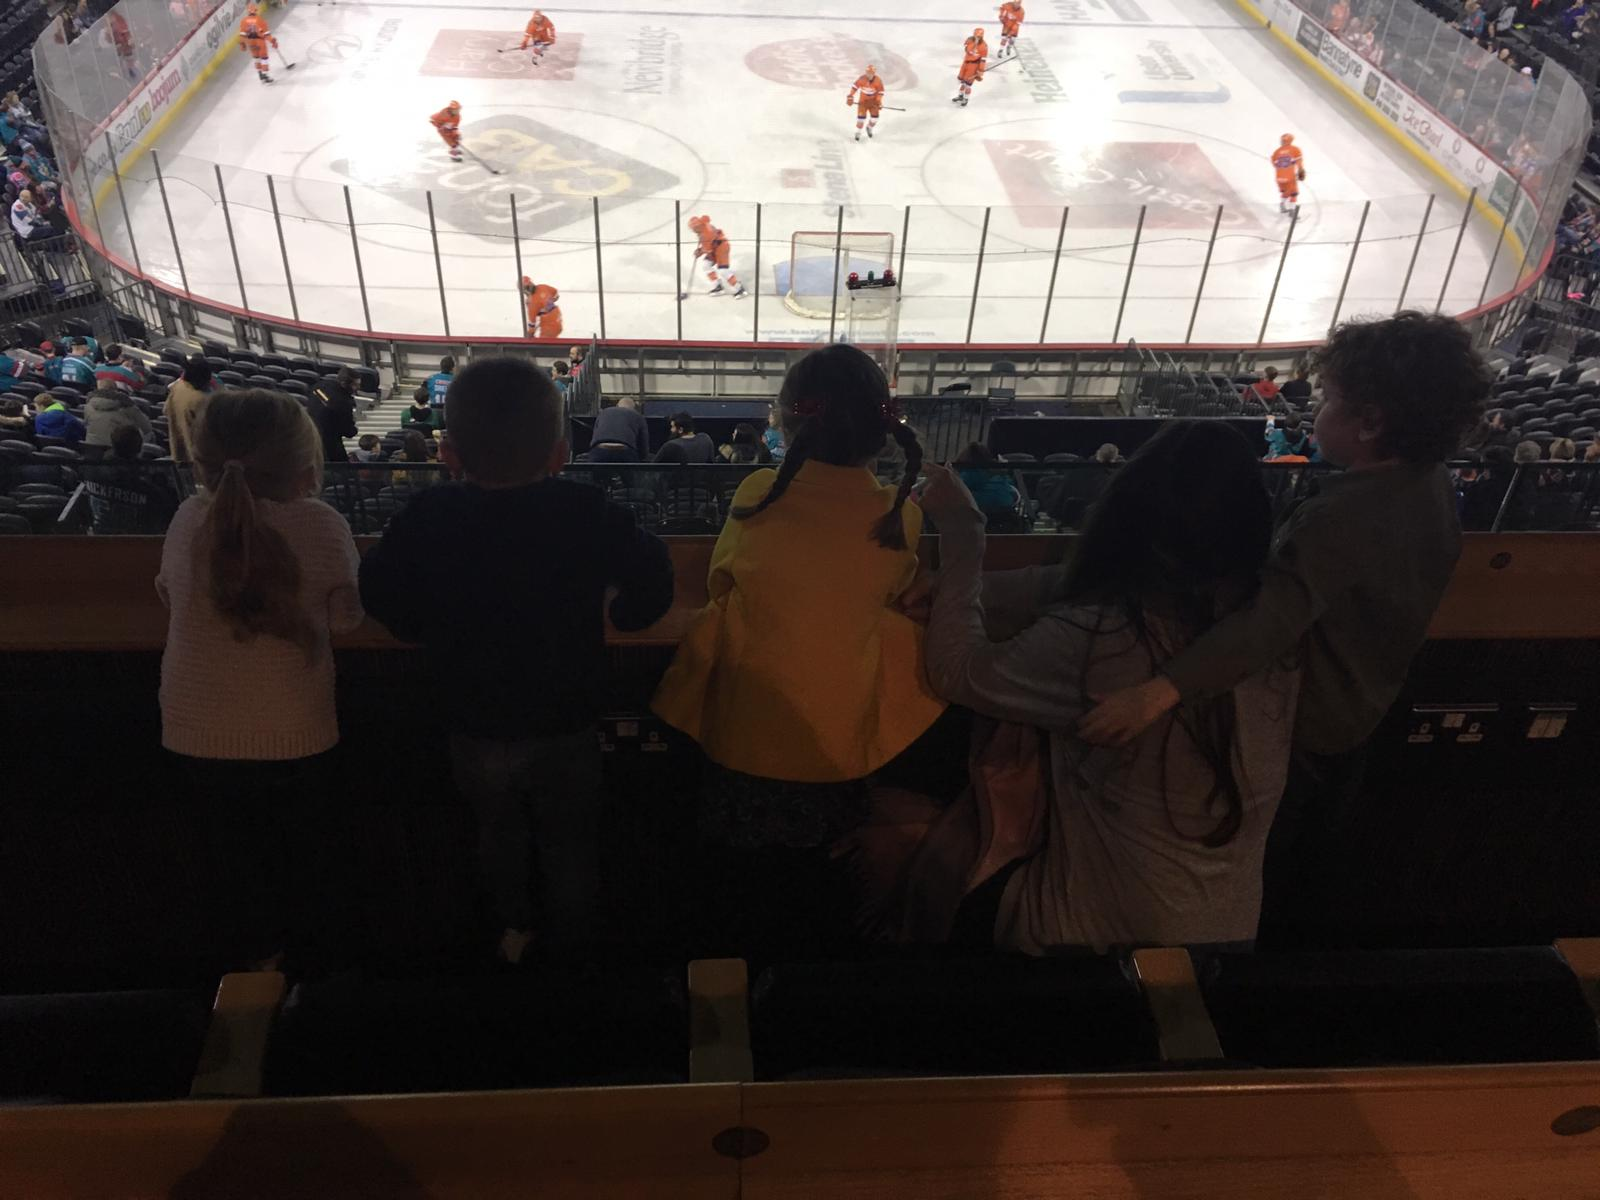 MIS & Guests at Belfast Giants against Sheffield Steelers at The SSE Arena